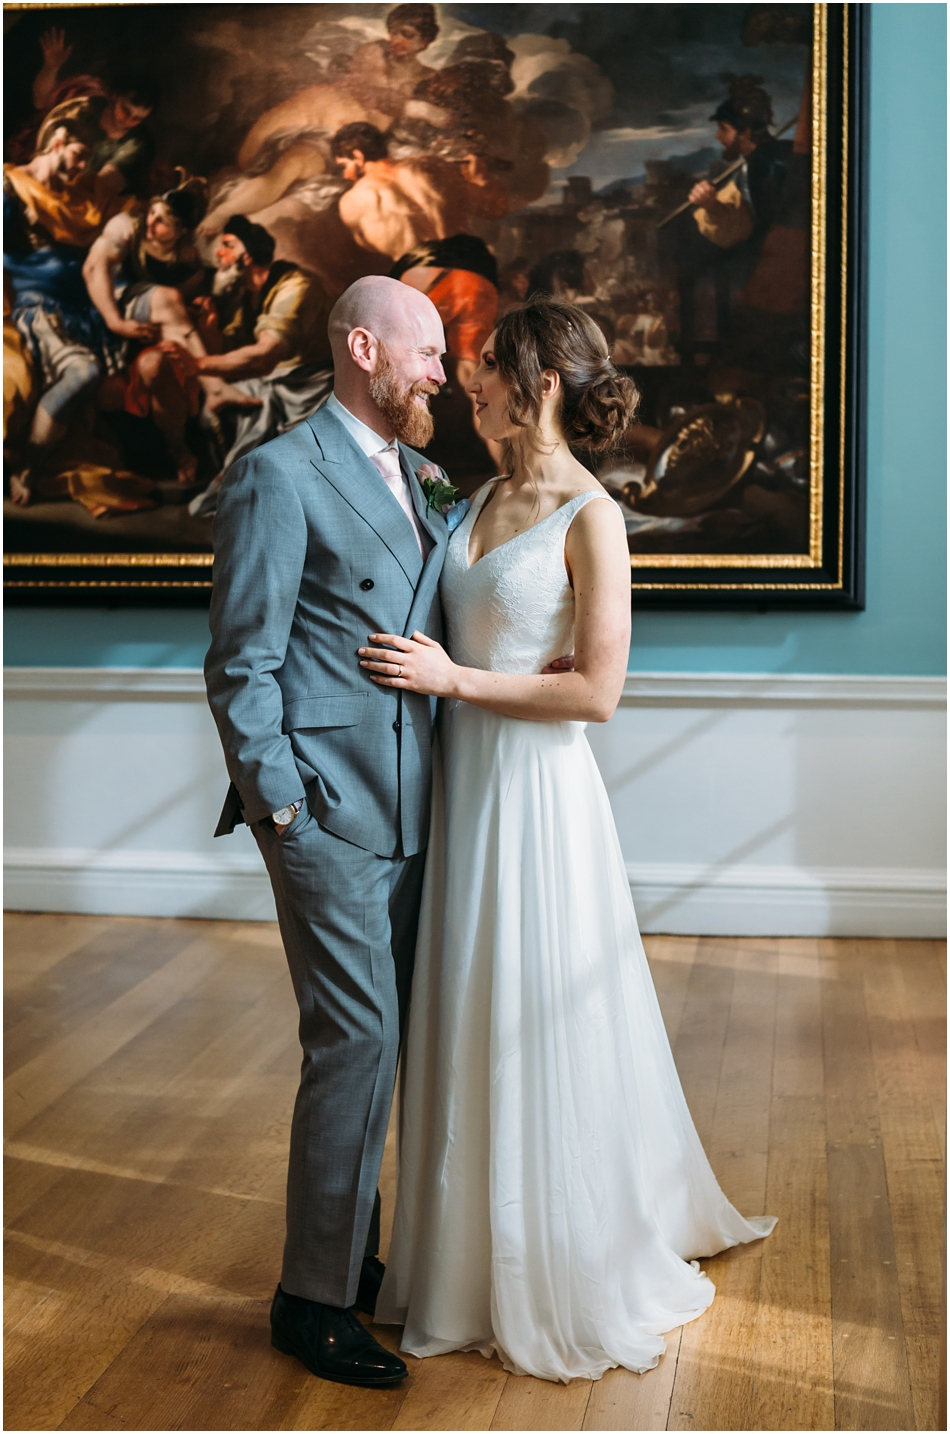 Compton Verney Wedding Photography; Bride and Groom portrait indoors in front of paintings